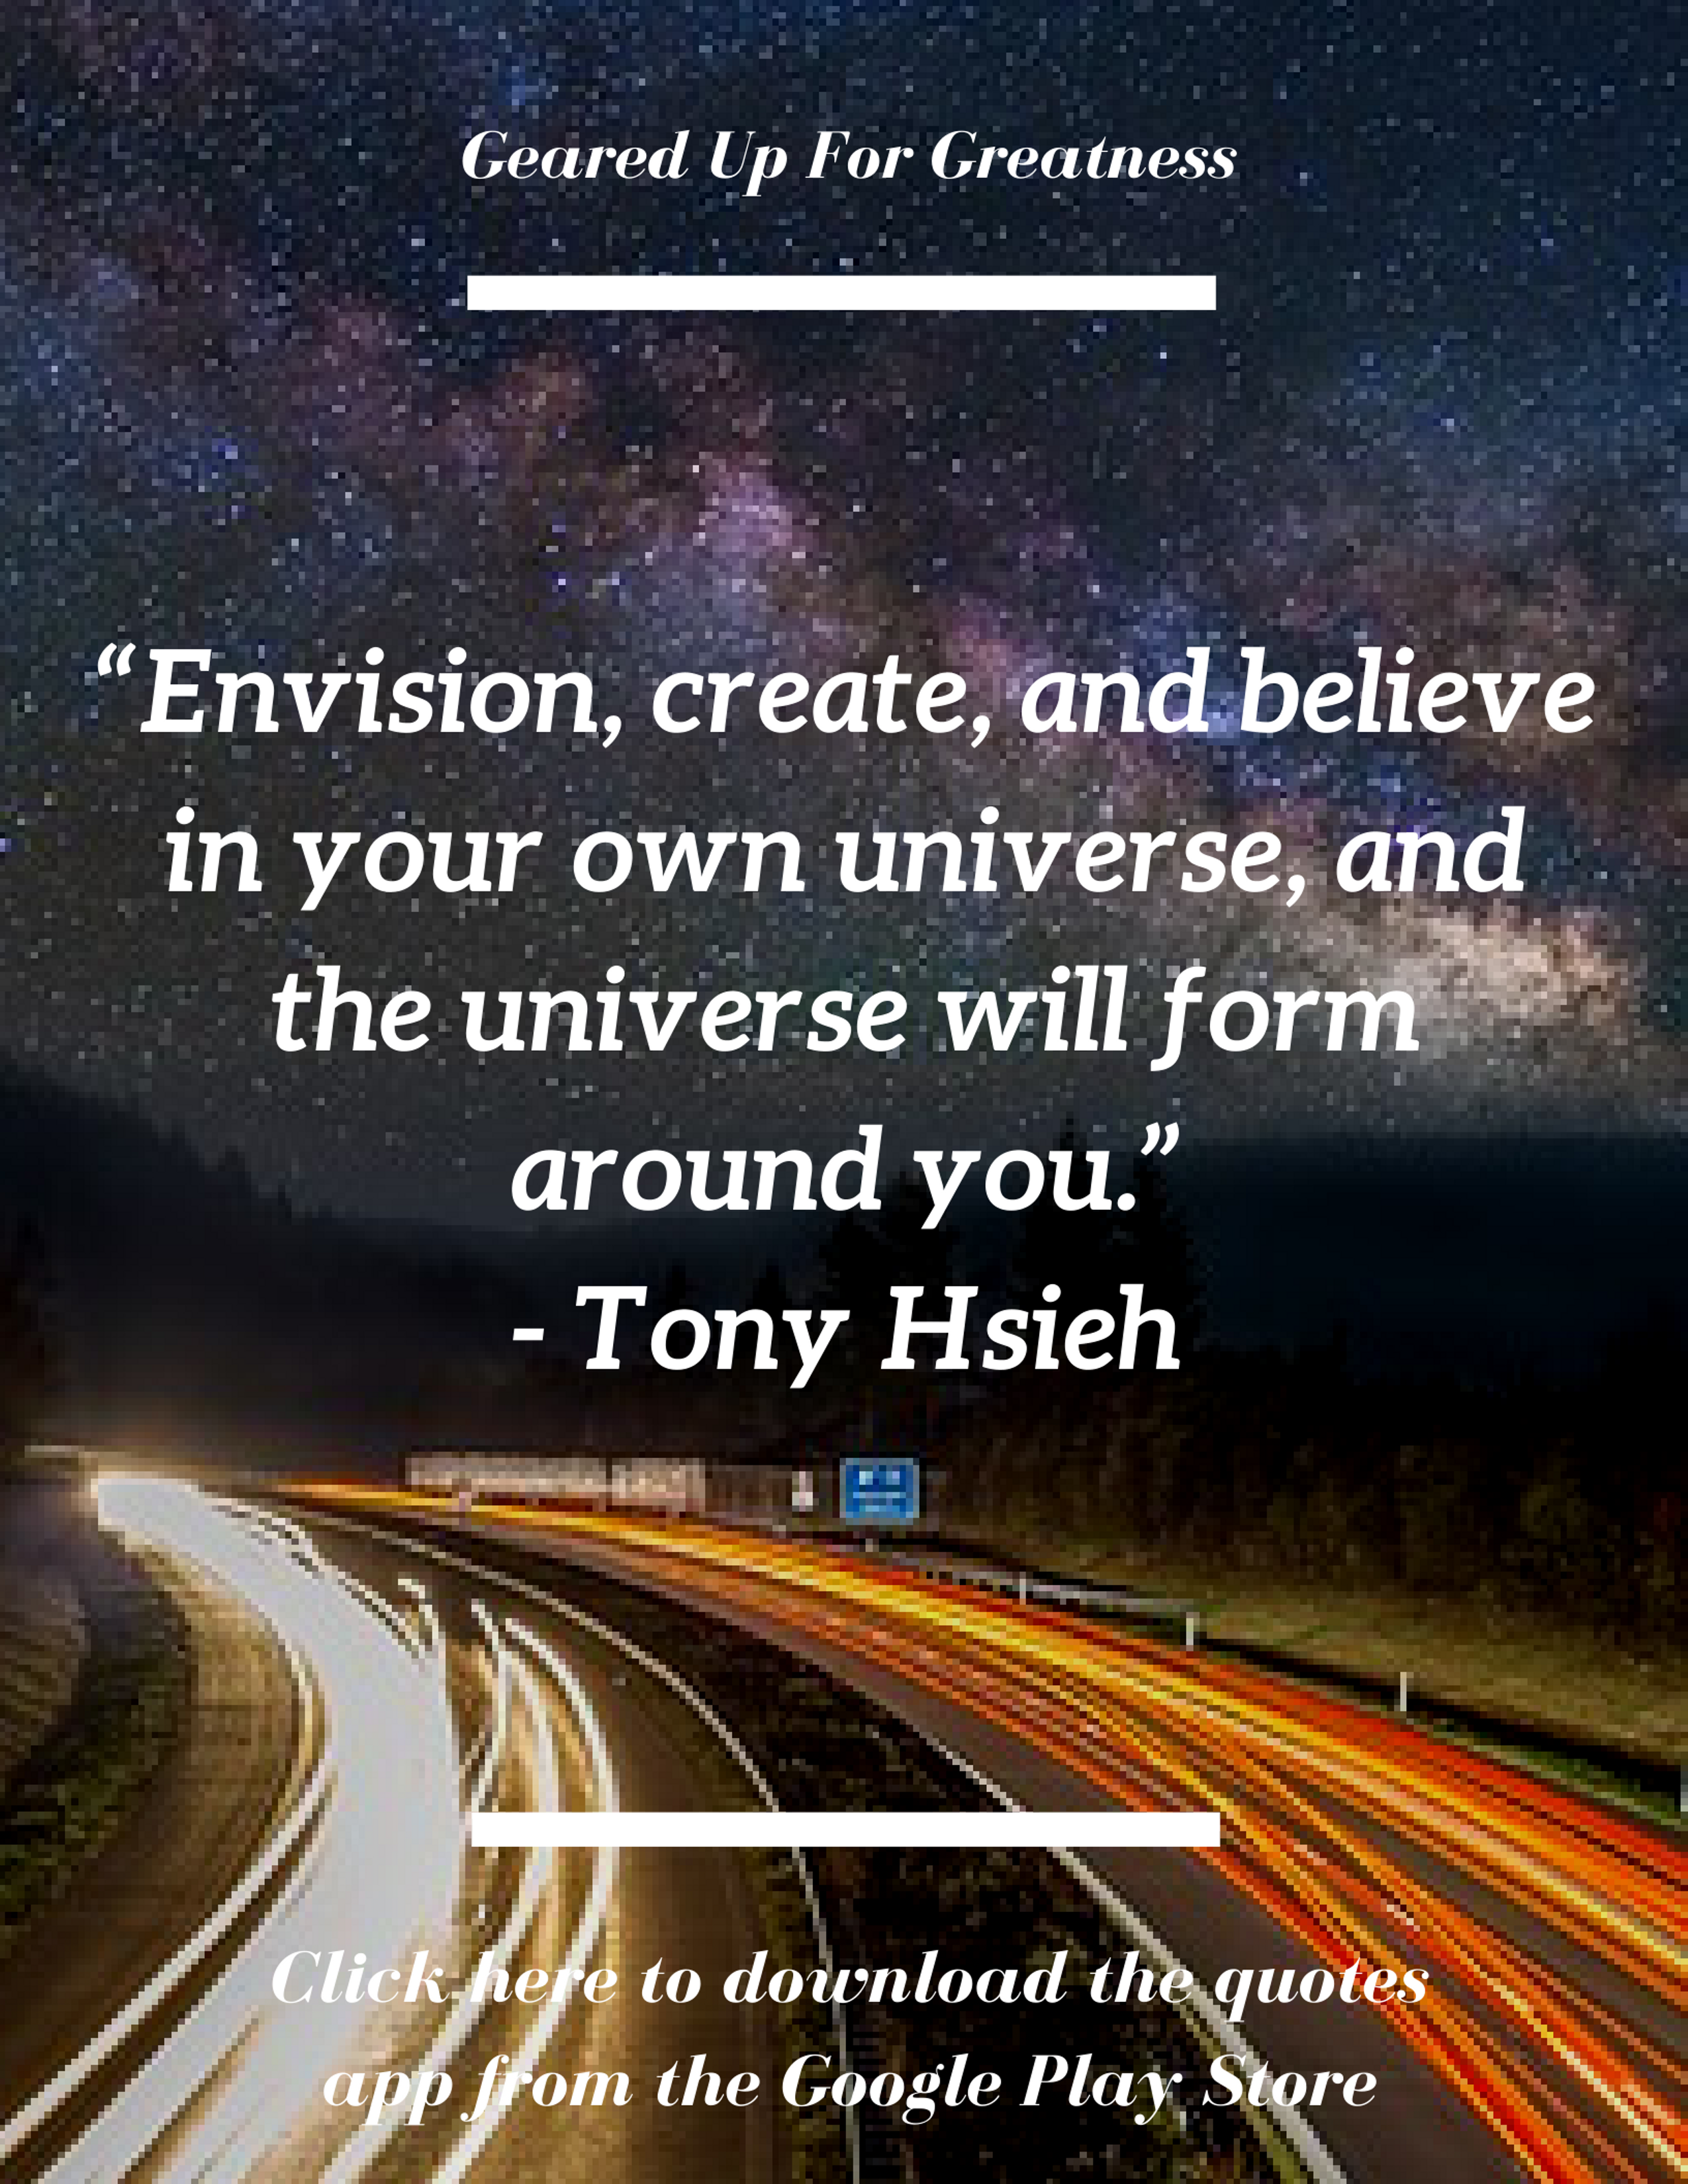 Love this quote! Envision, create, and believe in your own